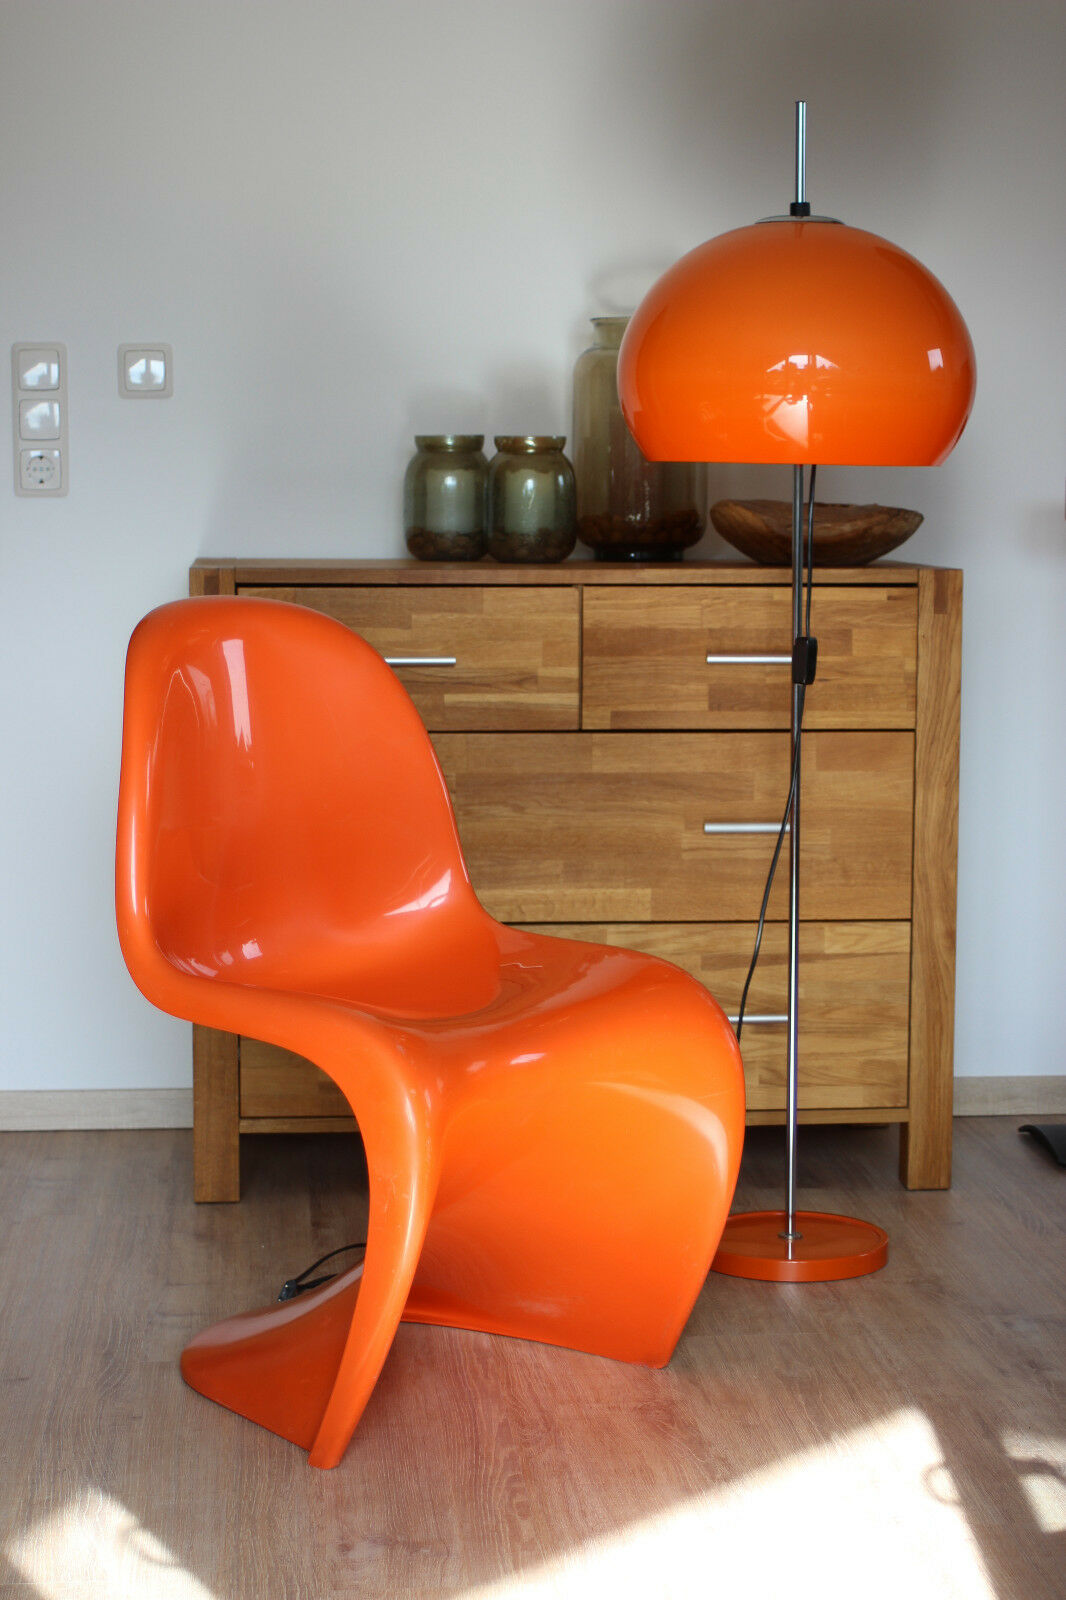 pilzlampe 70er orange vintage retro stehleuchte lampe. Black Bedroom Furniture Sets. Home Design Ideas